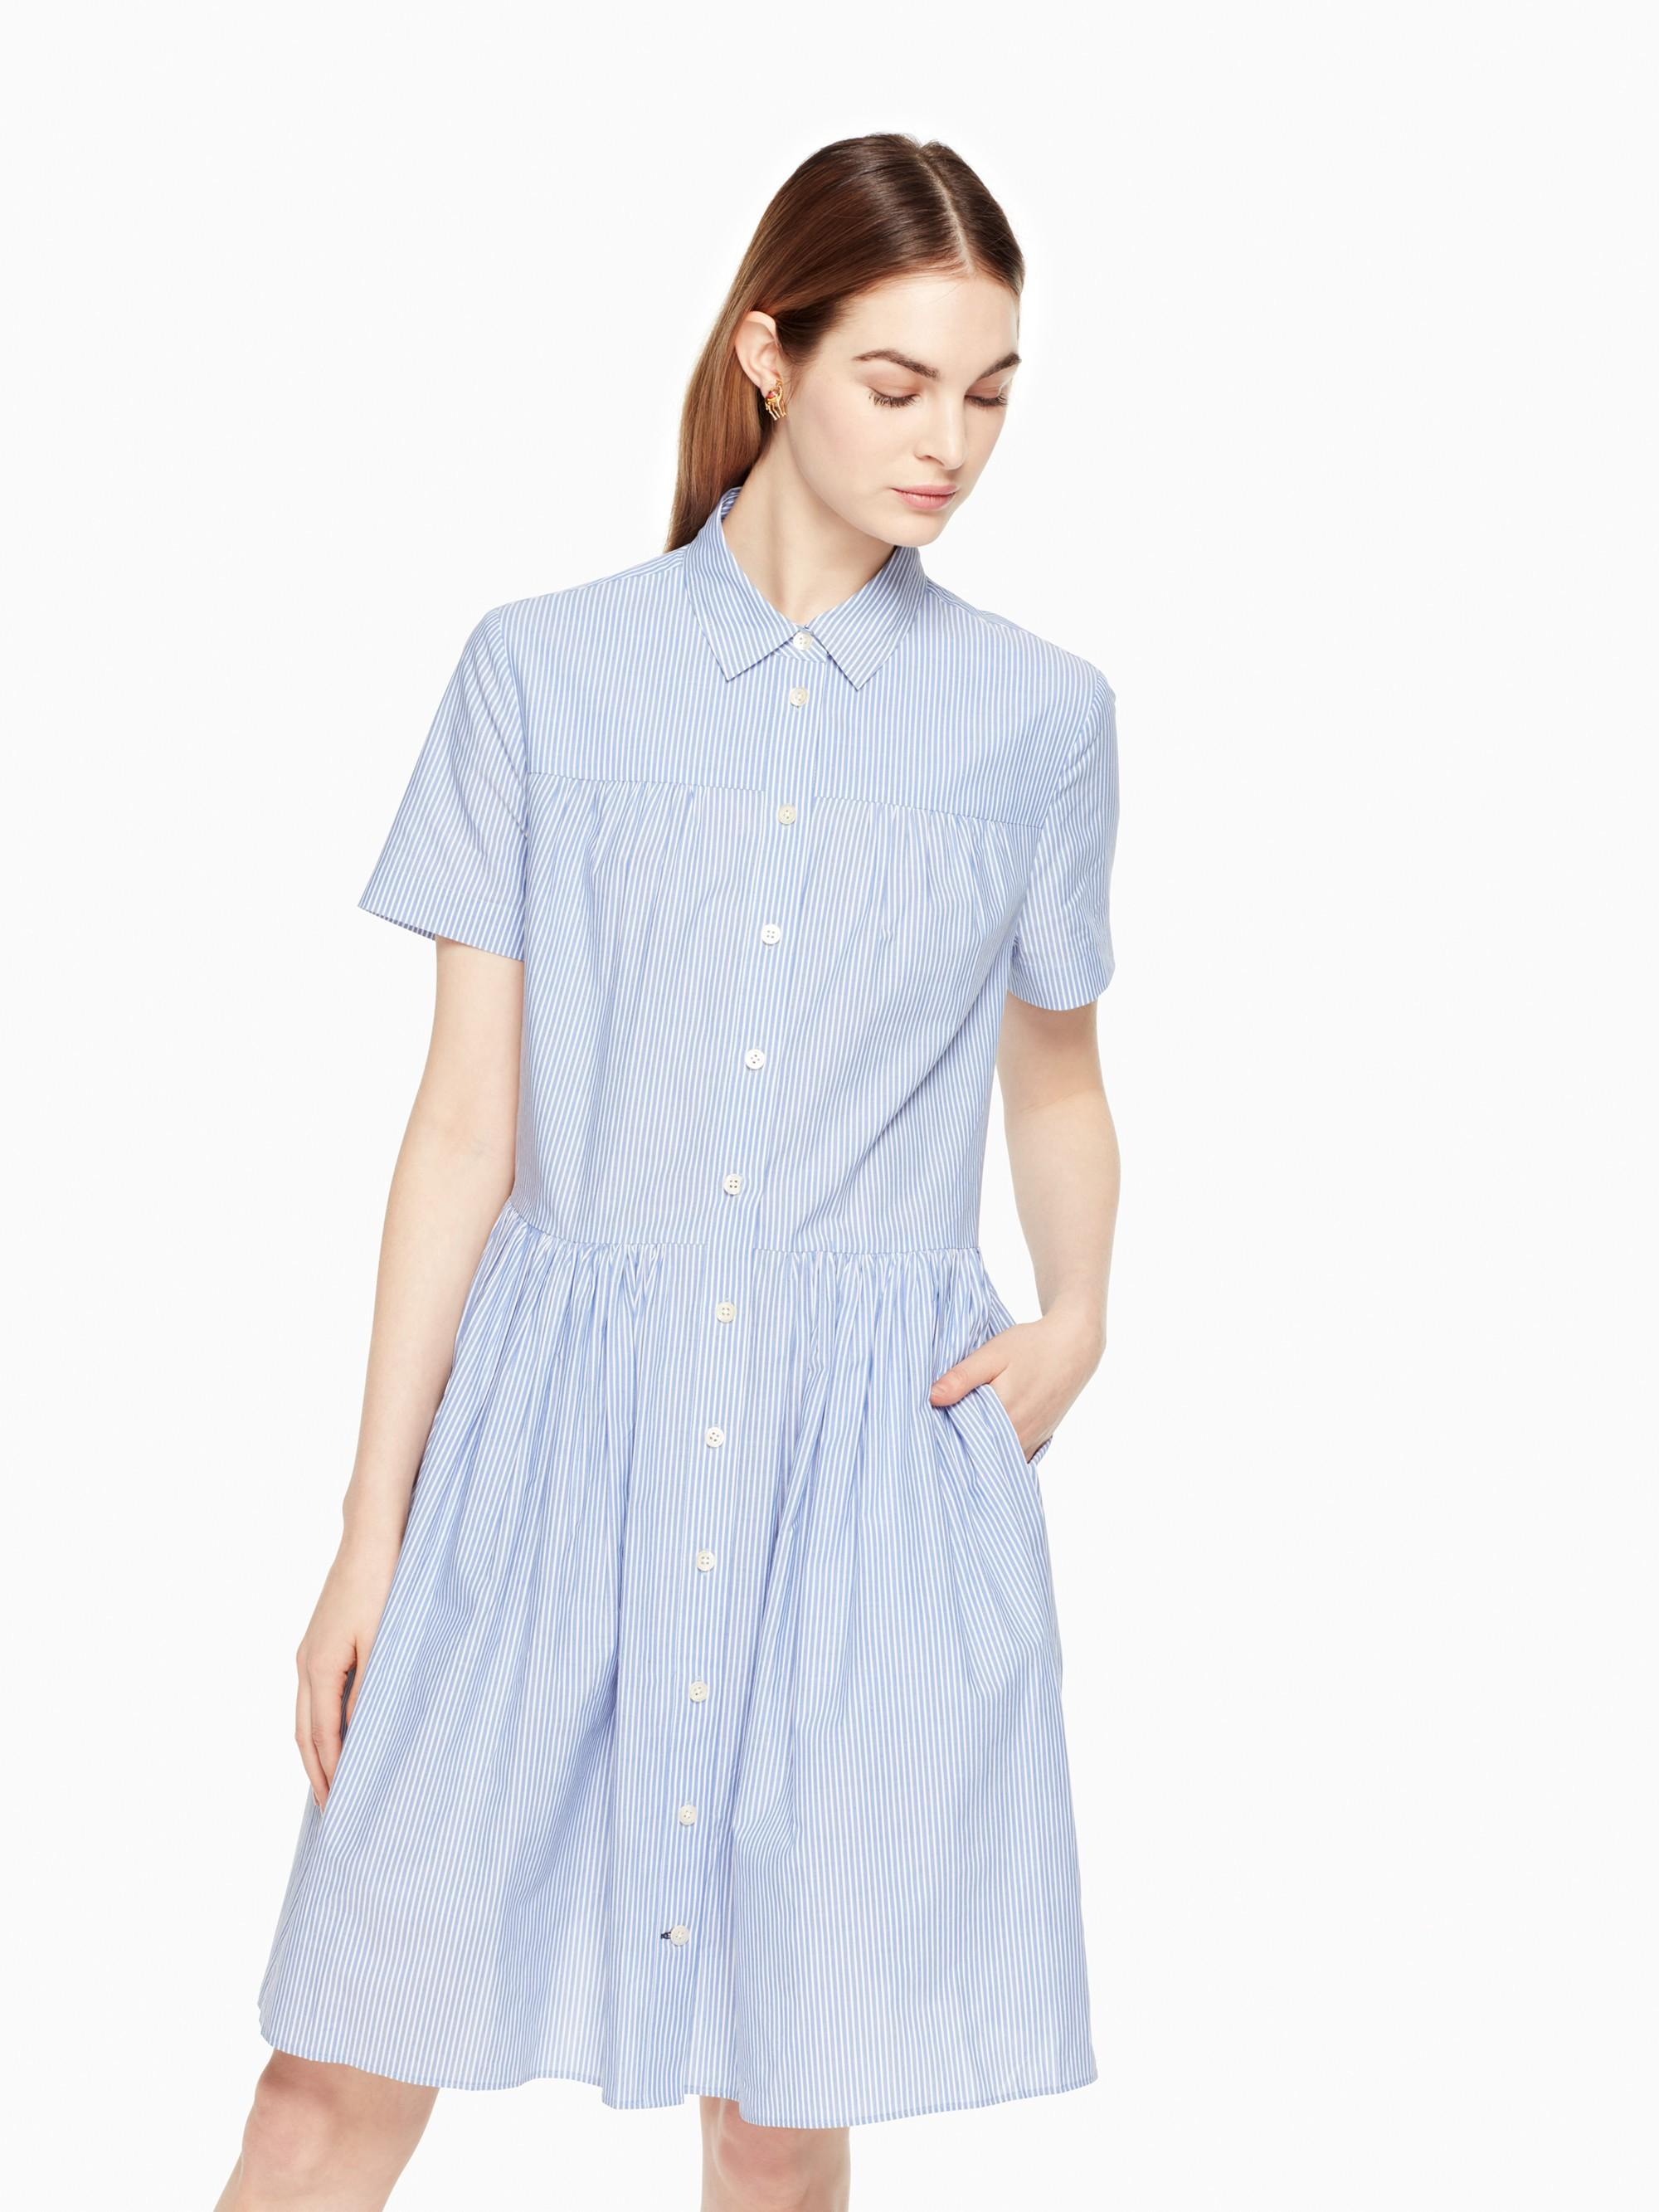 Kate Spade Broome Street Stripe Poplin Swing Shirtdress In Fresh White/Sound Blue